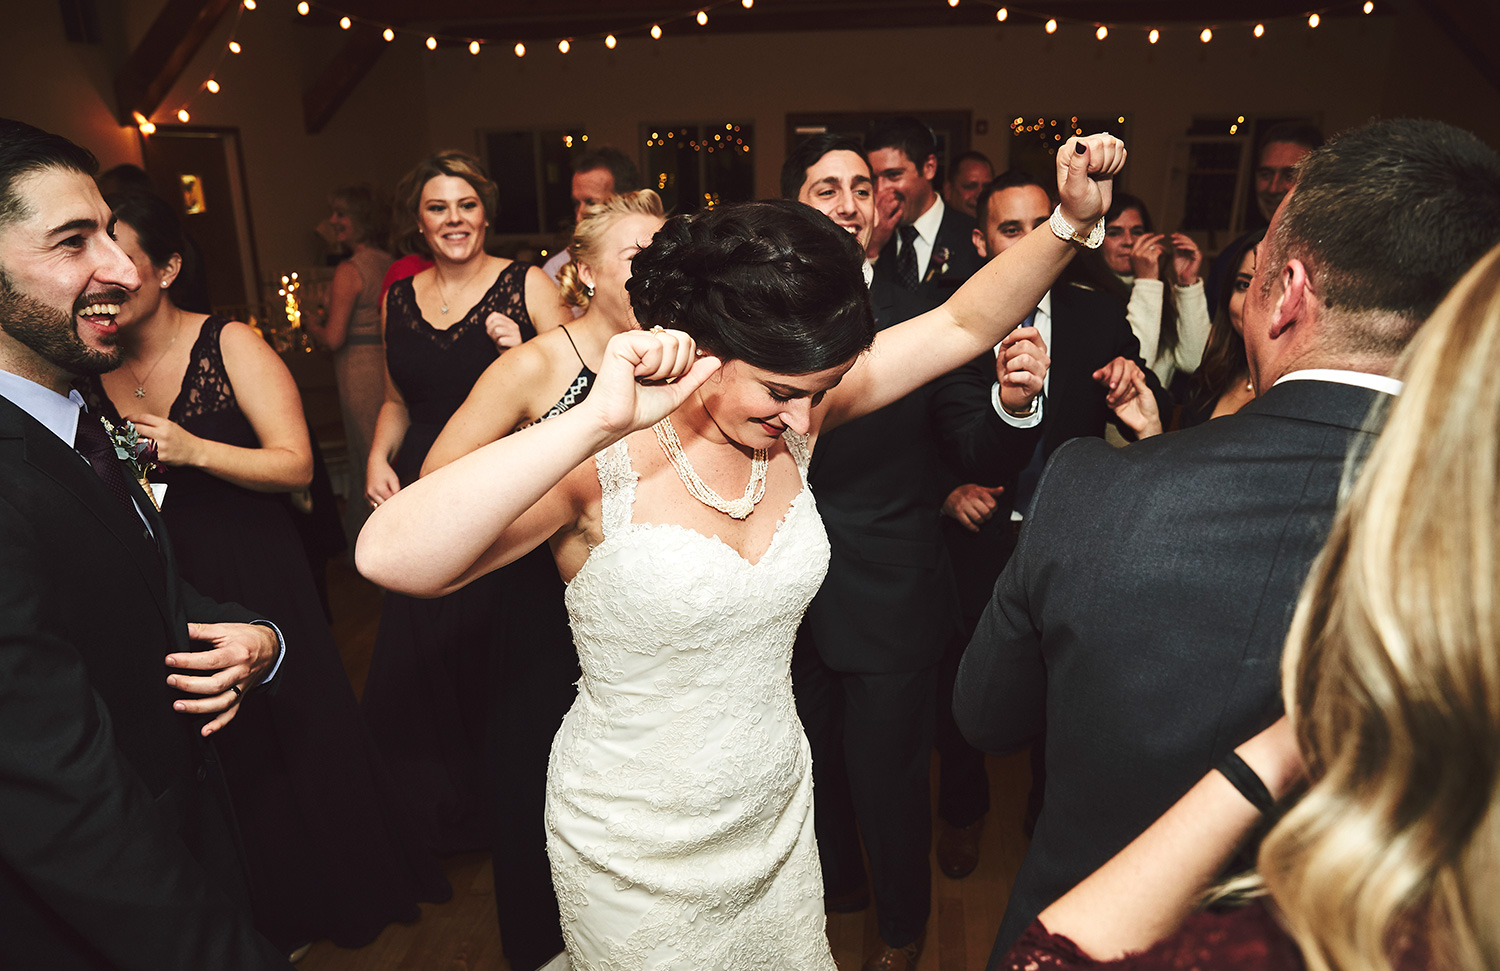 161119_ArrowParkLake&LodgeWedding_By_BriJohnsonWeddings_0143.jpg